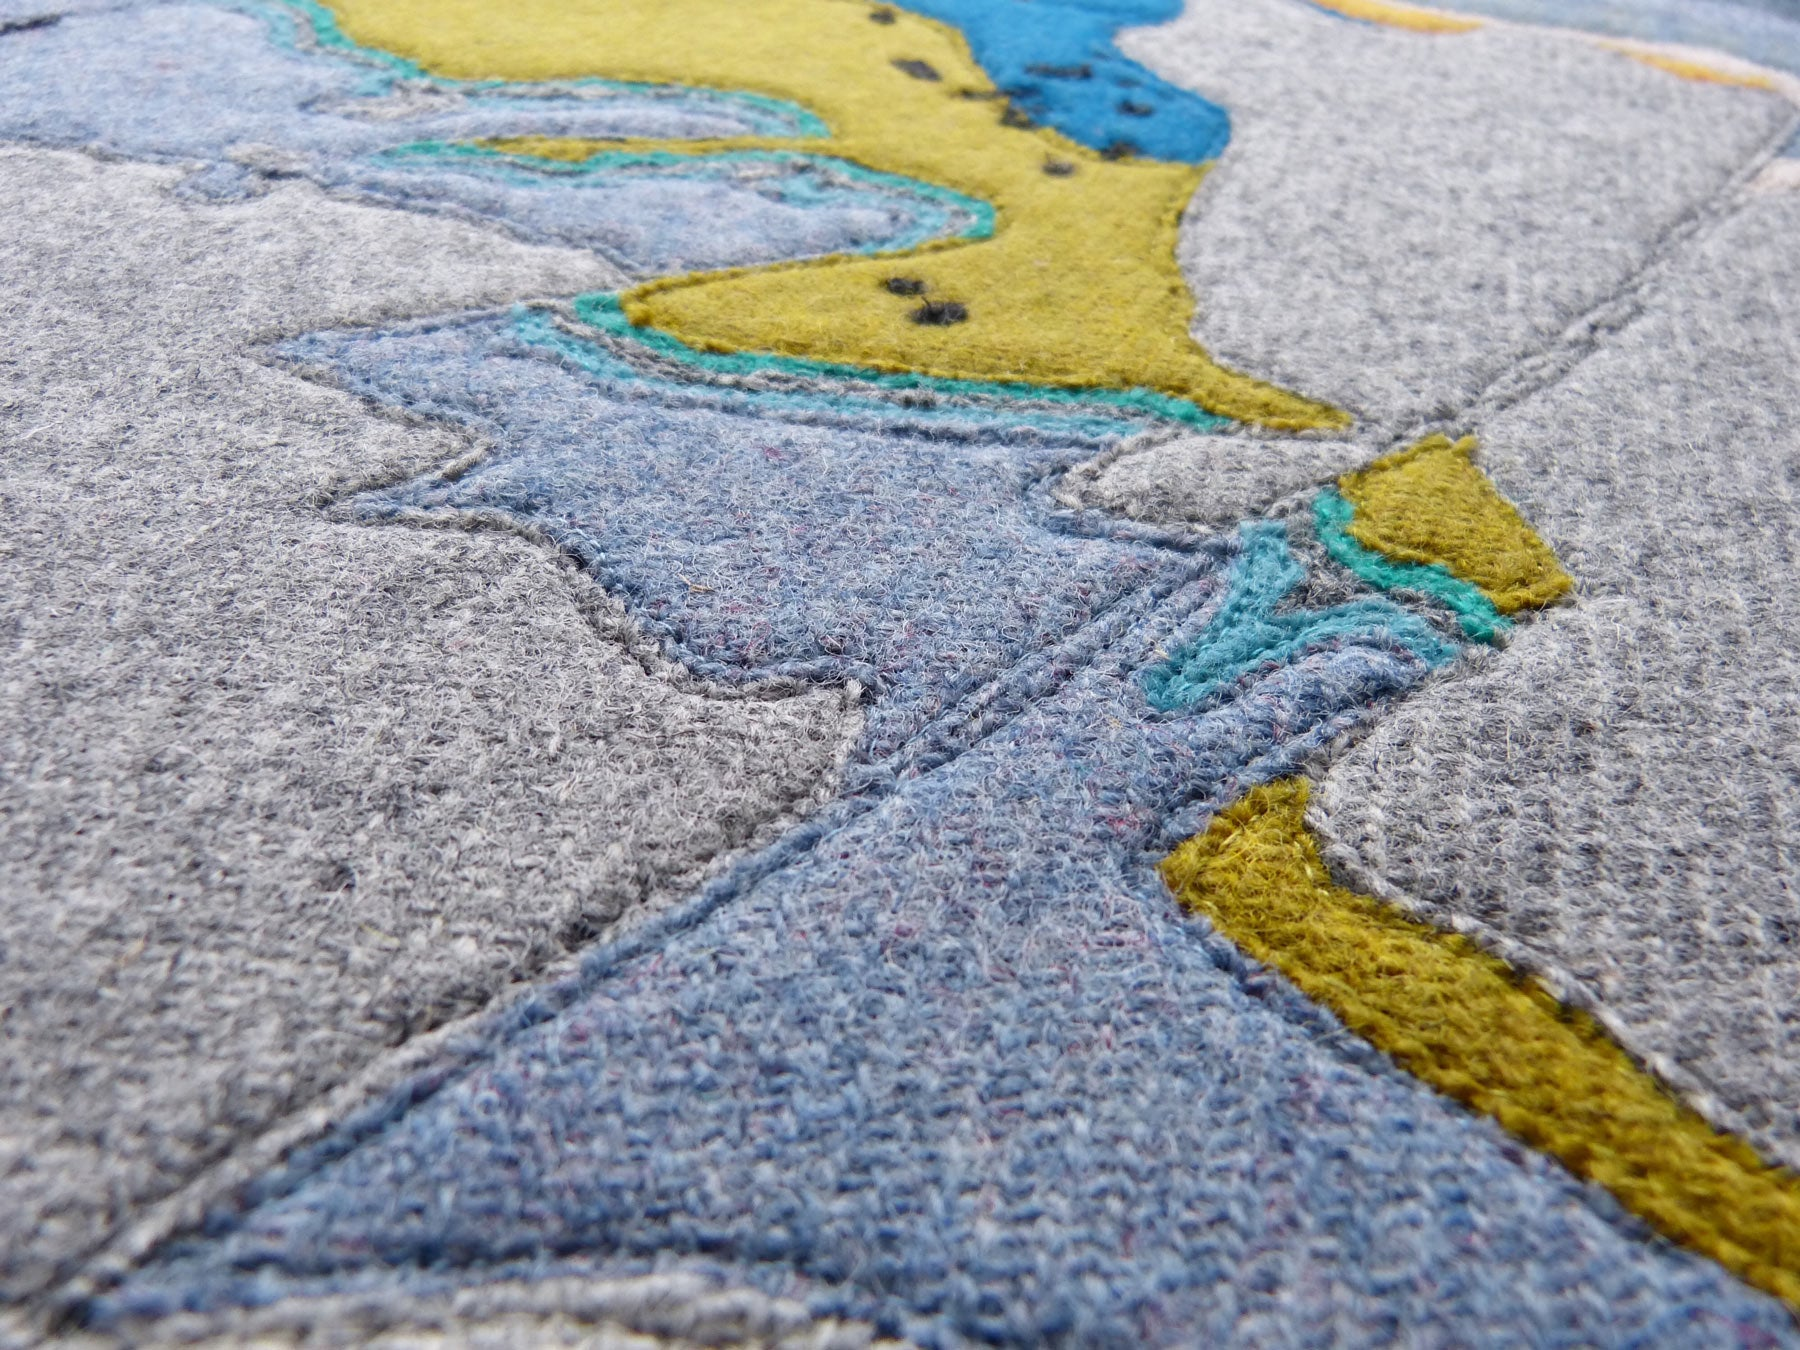 Geology Raasay Jane Hunter Scottish Textile Artist Harris Tweed